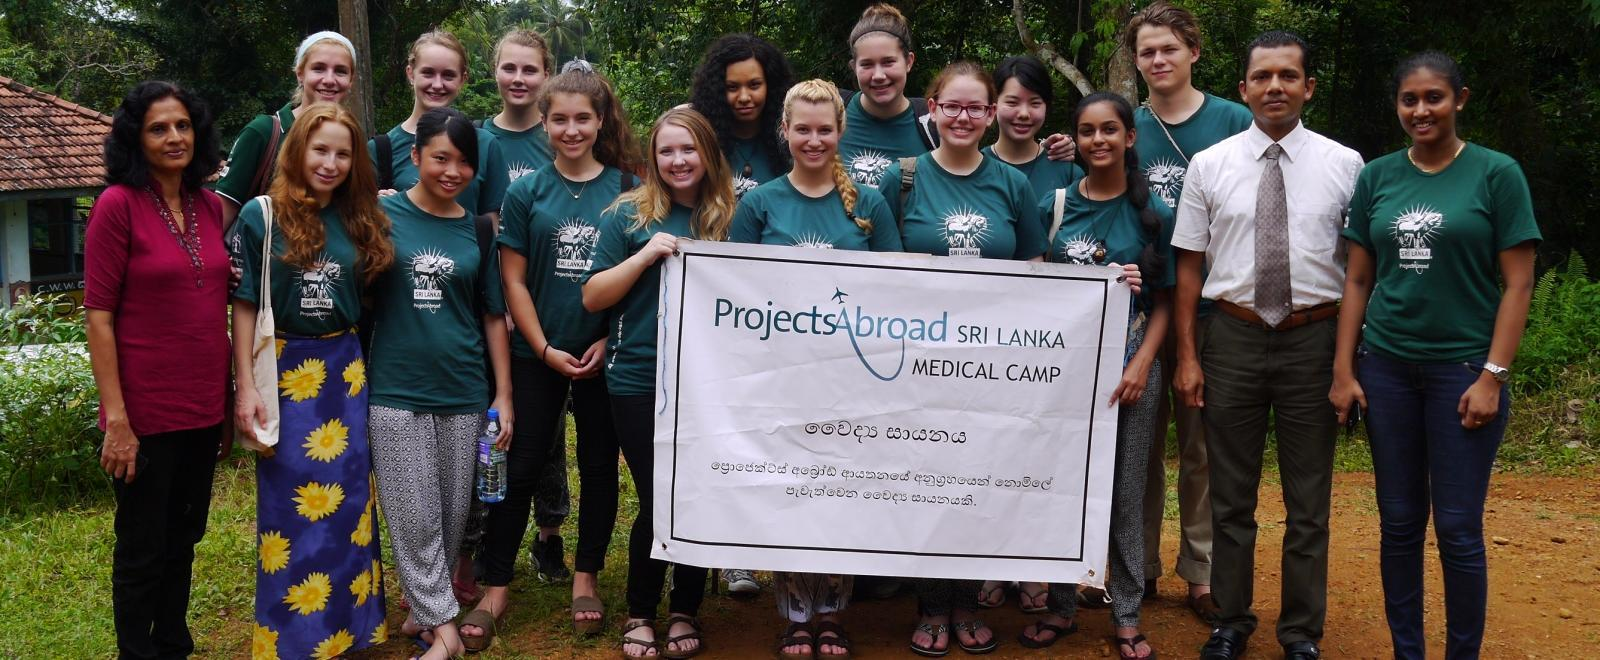 Dentistry interns and healthcare staff after completing a dental outreach and medical camp in Sri Lanka.